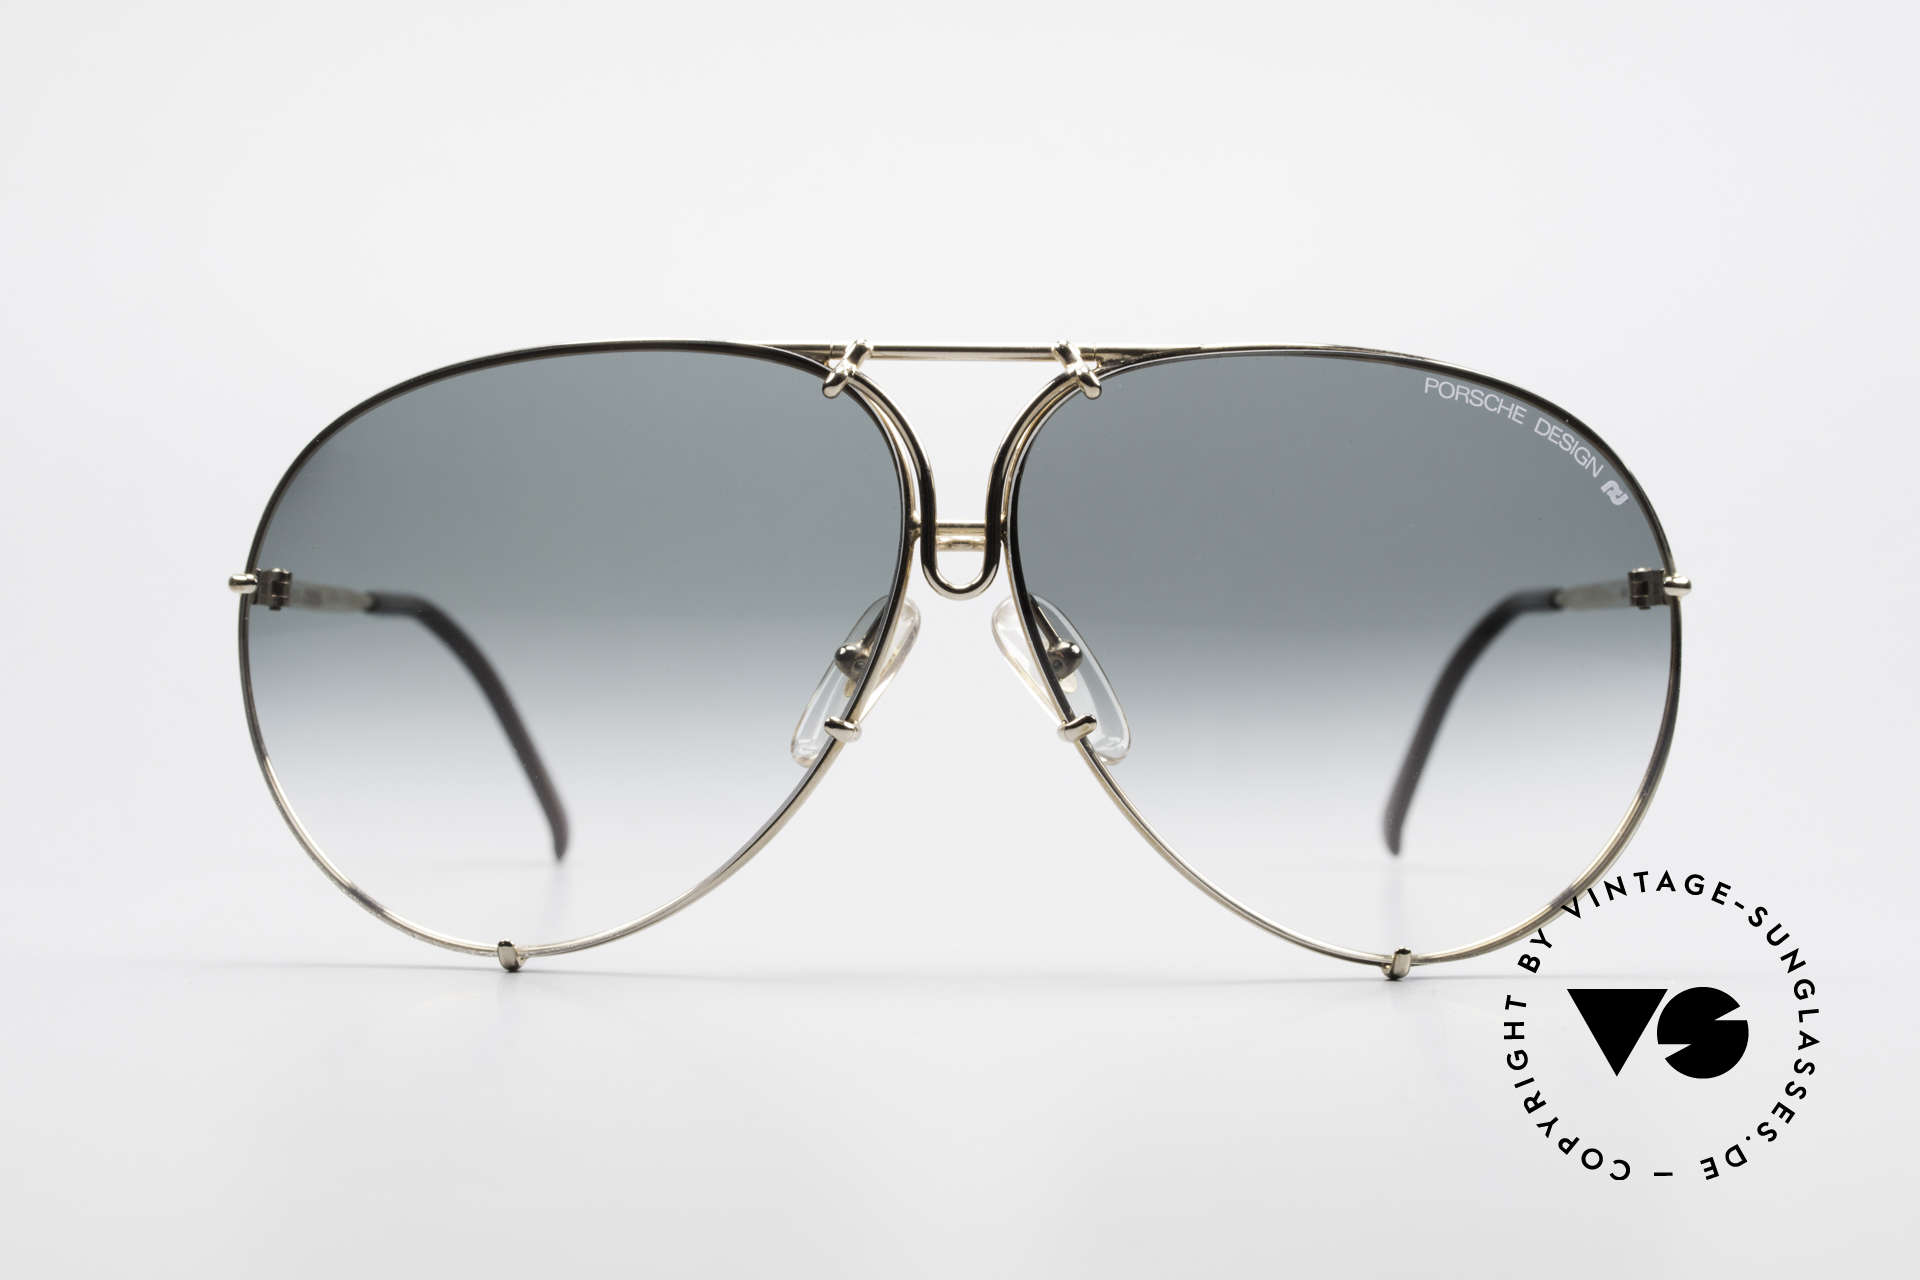 Porsche 5623 Black Mass Movie Sunglasses, one of the most wanted vintage models, worldwide, Made for Men and Women